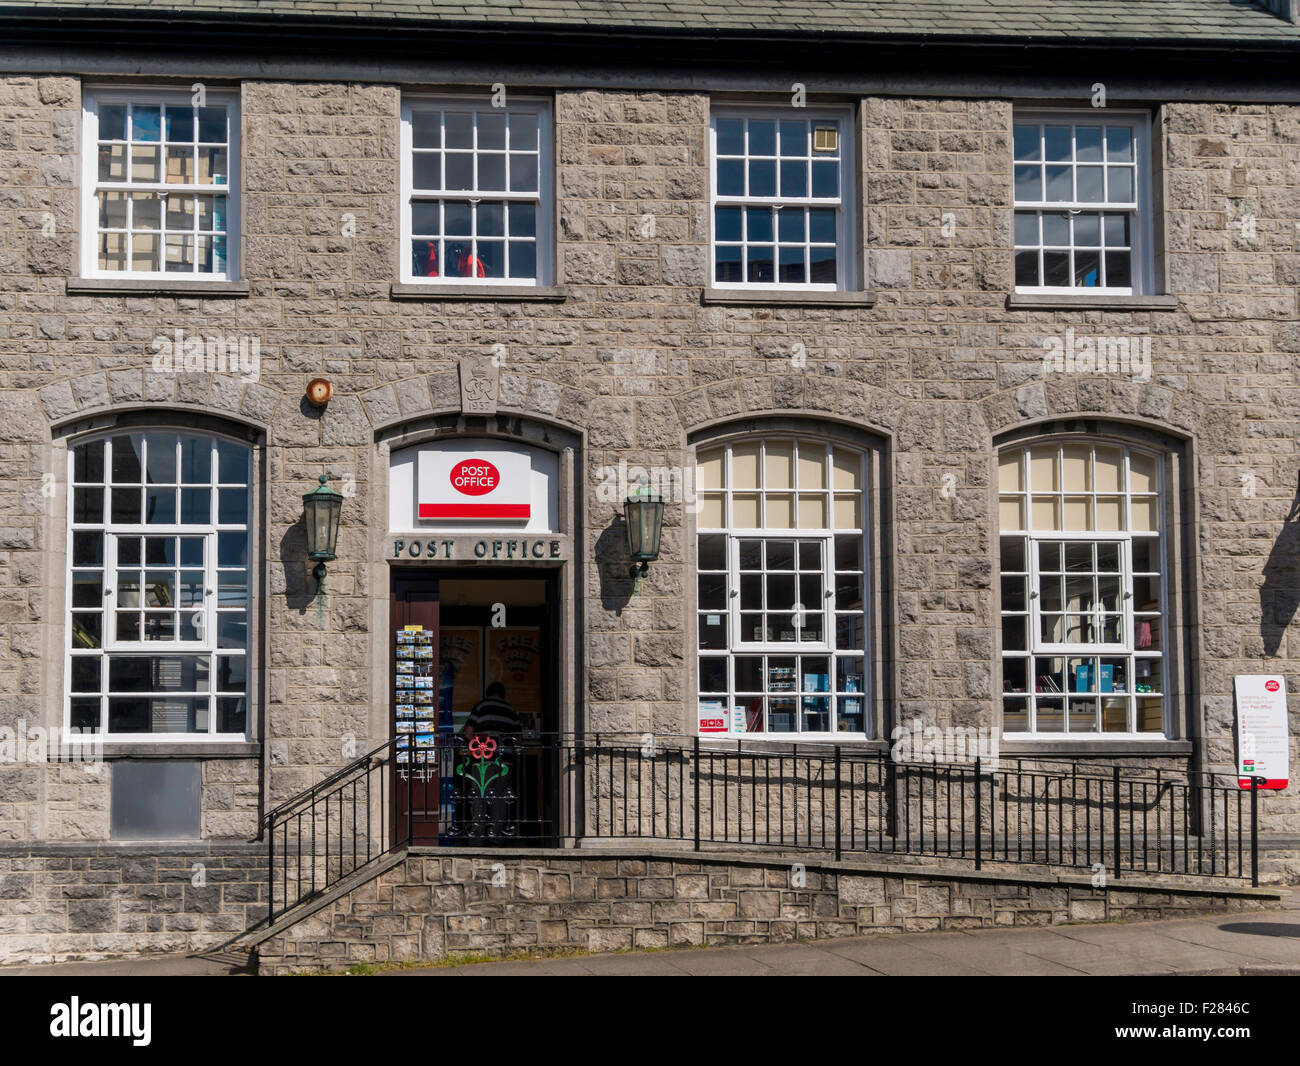 The Post Office at Grange over Sands Cumbria a substantial stone built building - Stock Image